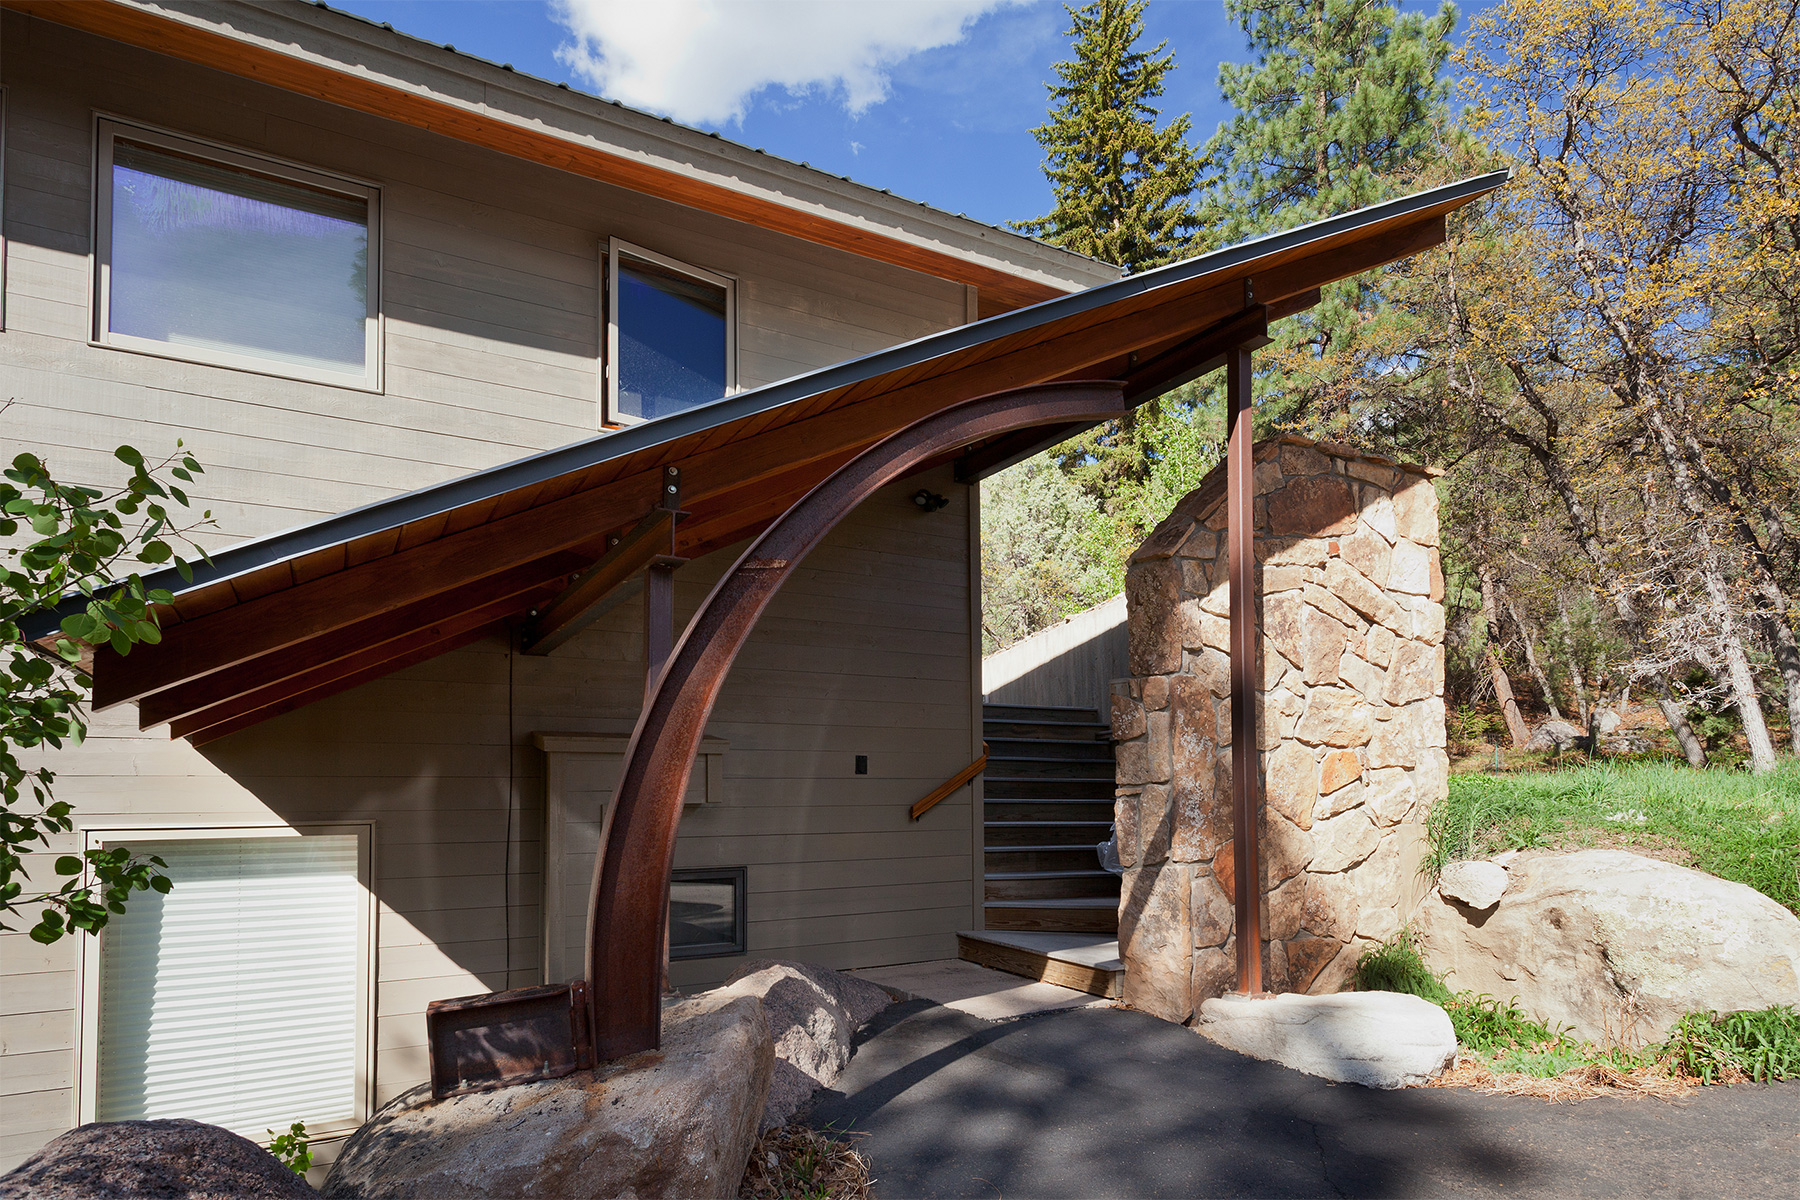 Additional photo for property listing at 820 Elkhorn Mountain 820 Elkhorn Mountain Road Durango, Colorado 81301 United States